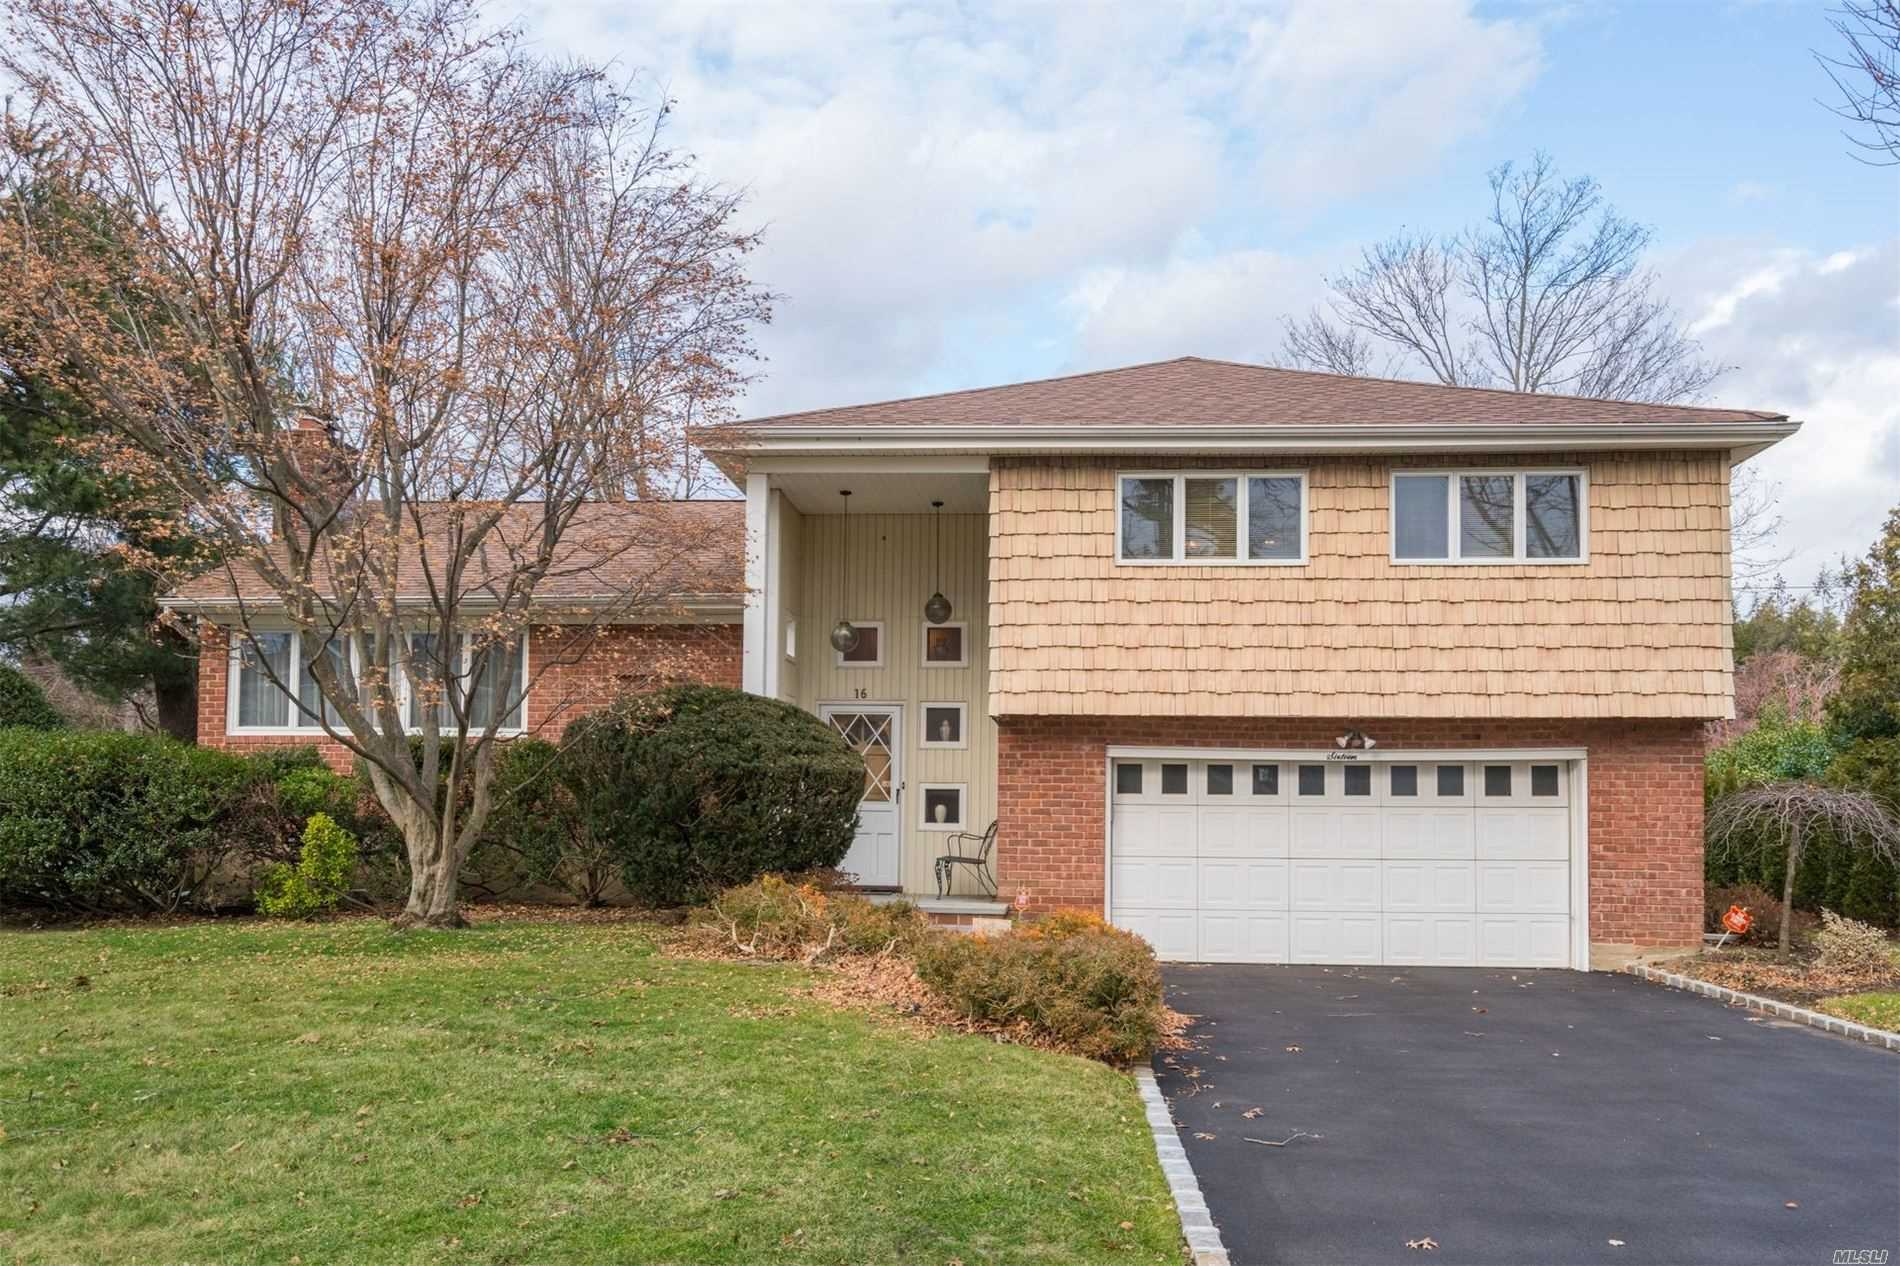 16 Lilac Dr - Syosset, New York